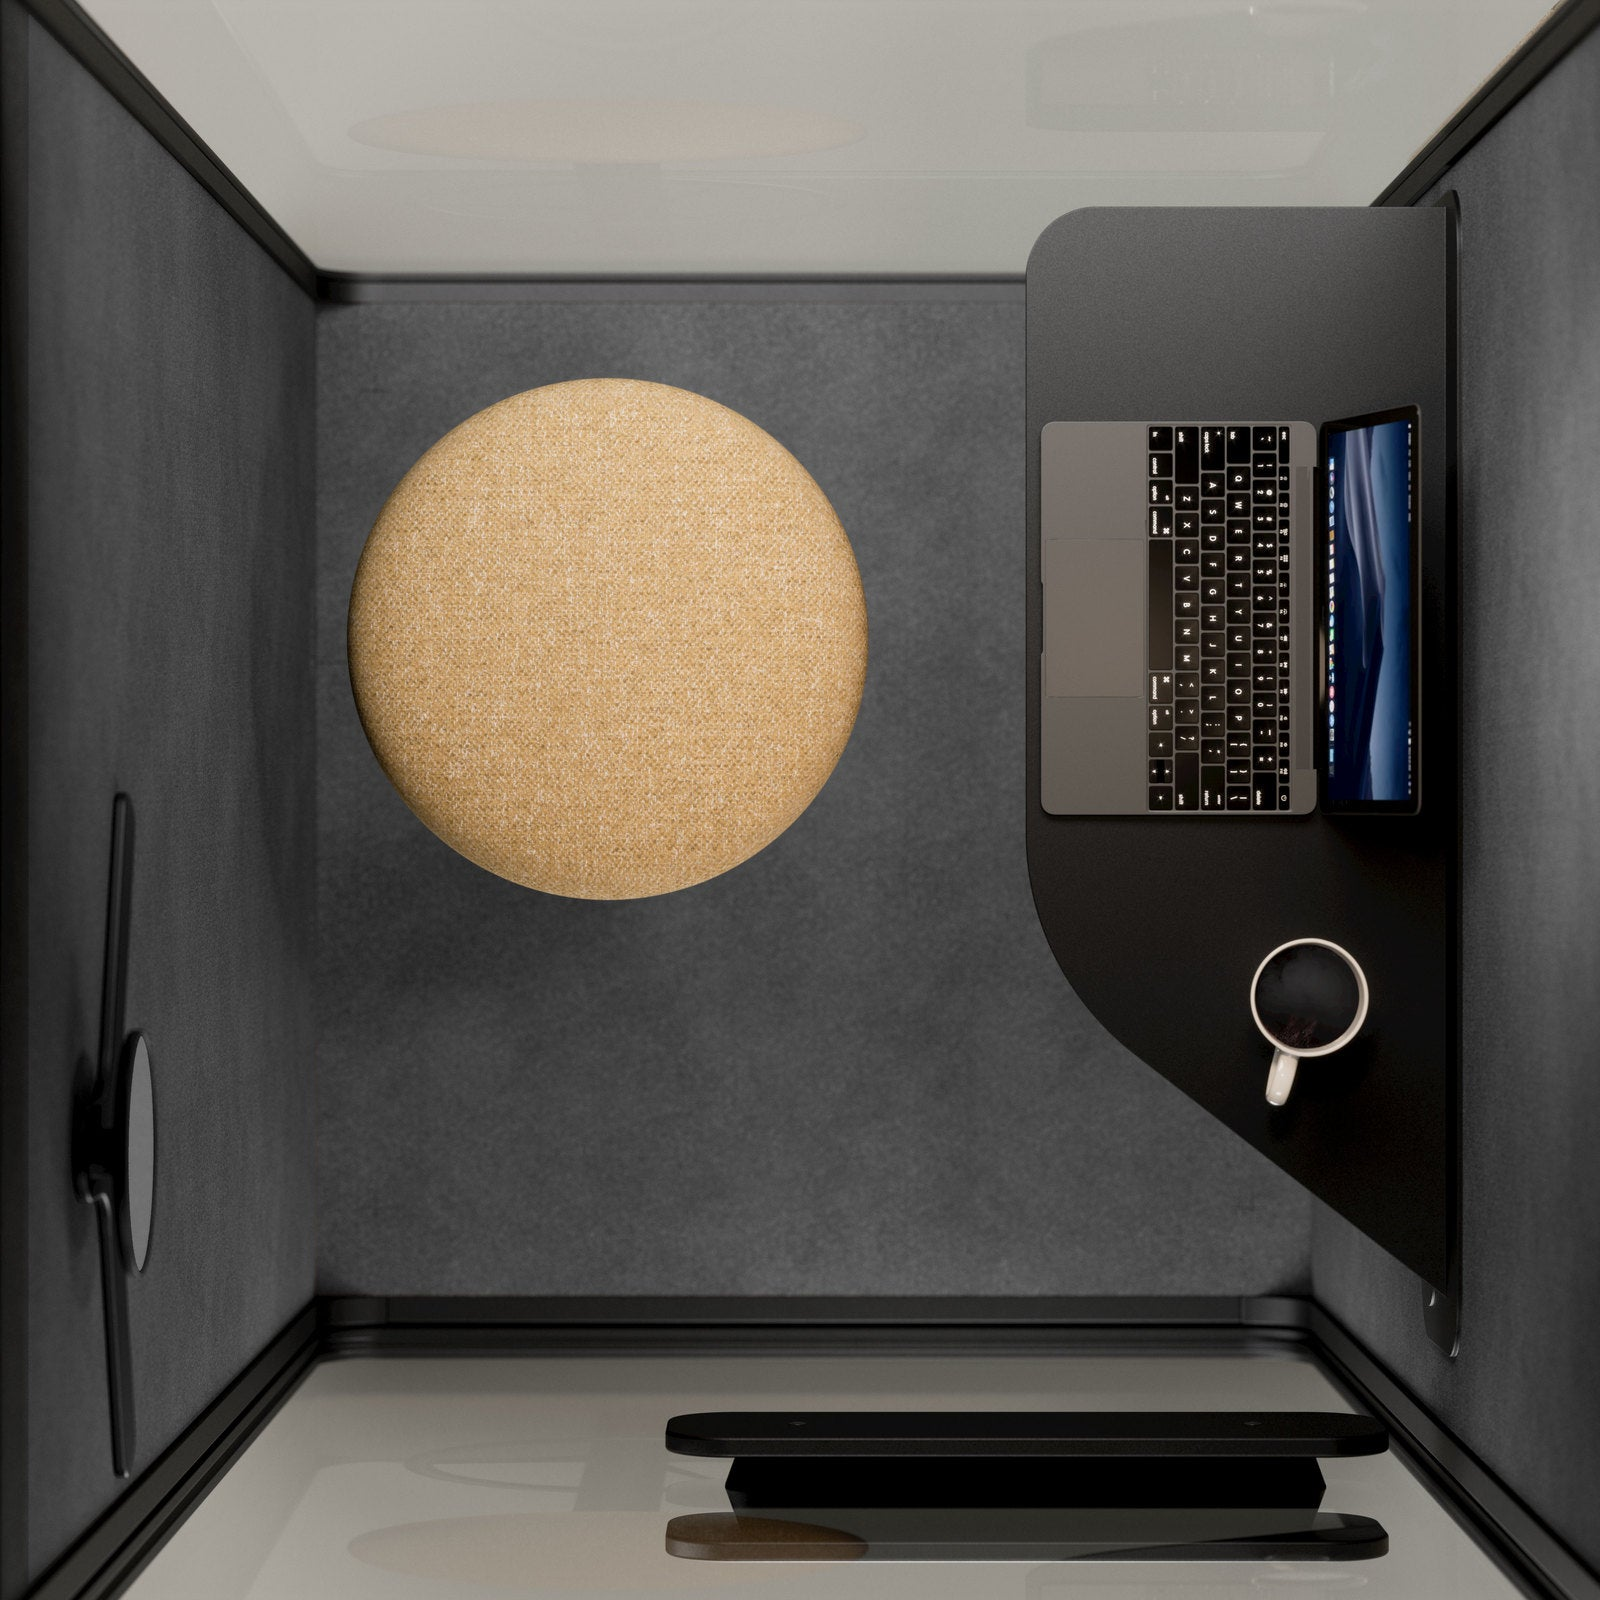 Martela PodBooth Acoustic Sound Proof Meeting Pod